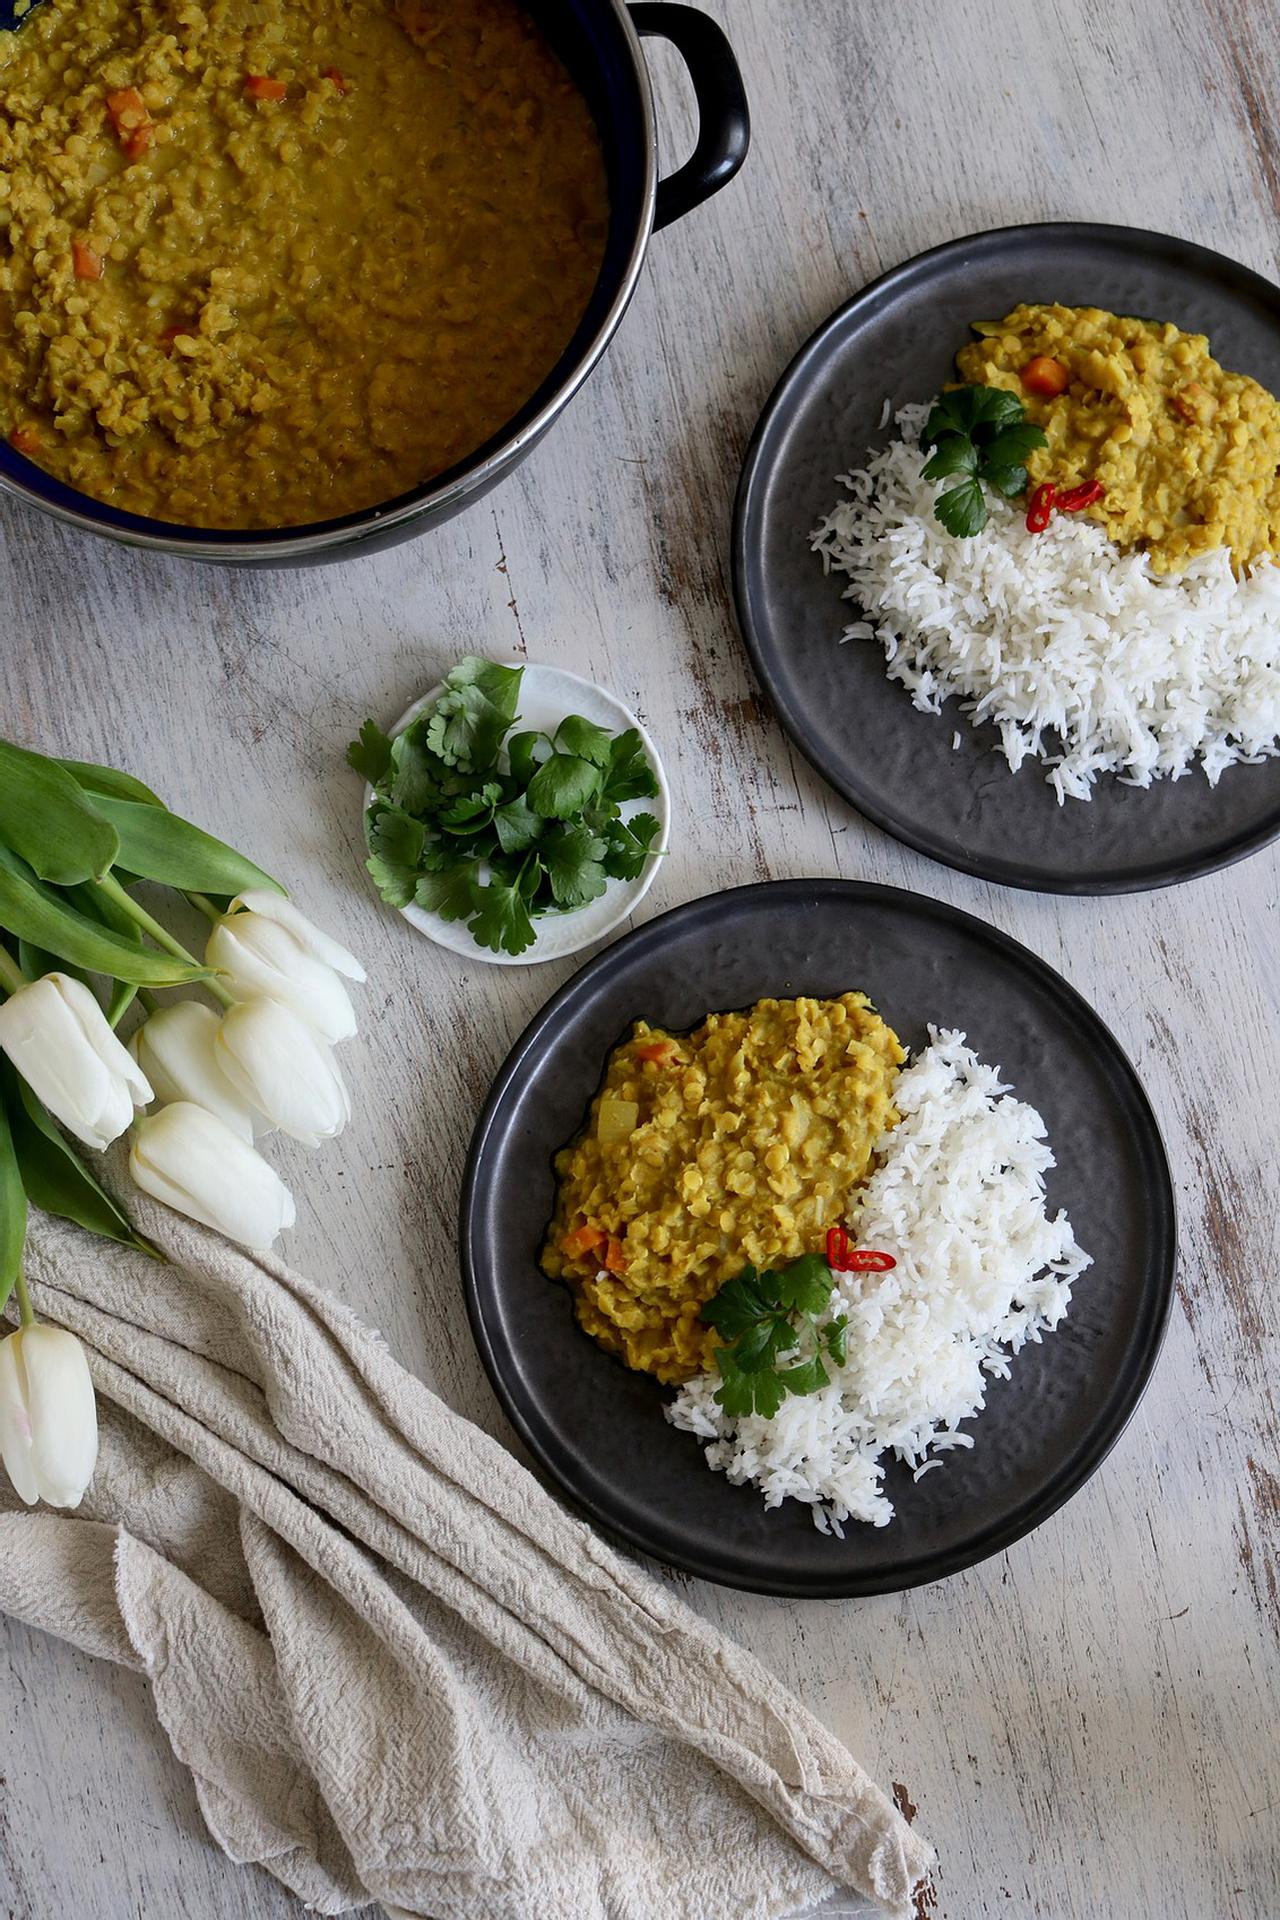 Main image of Comforting Coconut Red Lentil Daal